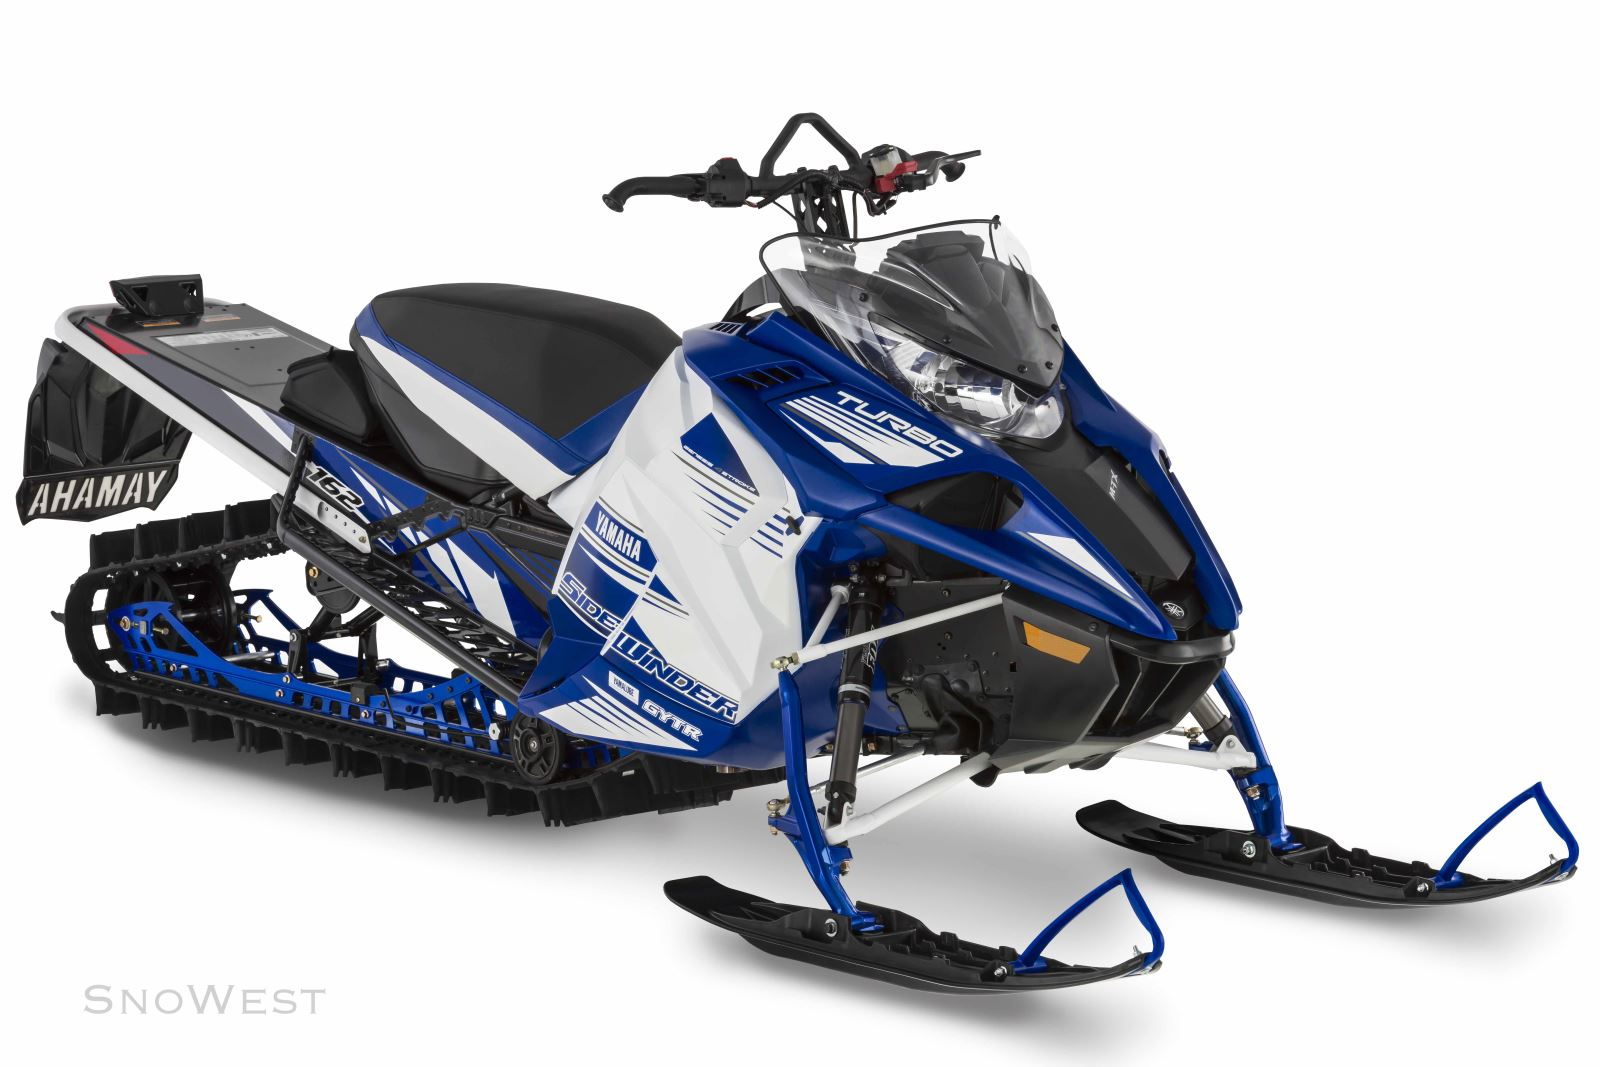 Yamaha 2017 Everything You Need To Know About The Sidewinder M Tx Se Turbo Snowest Magazine